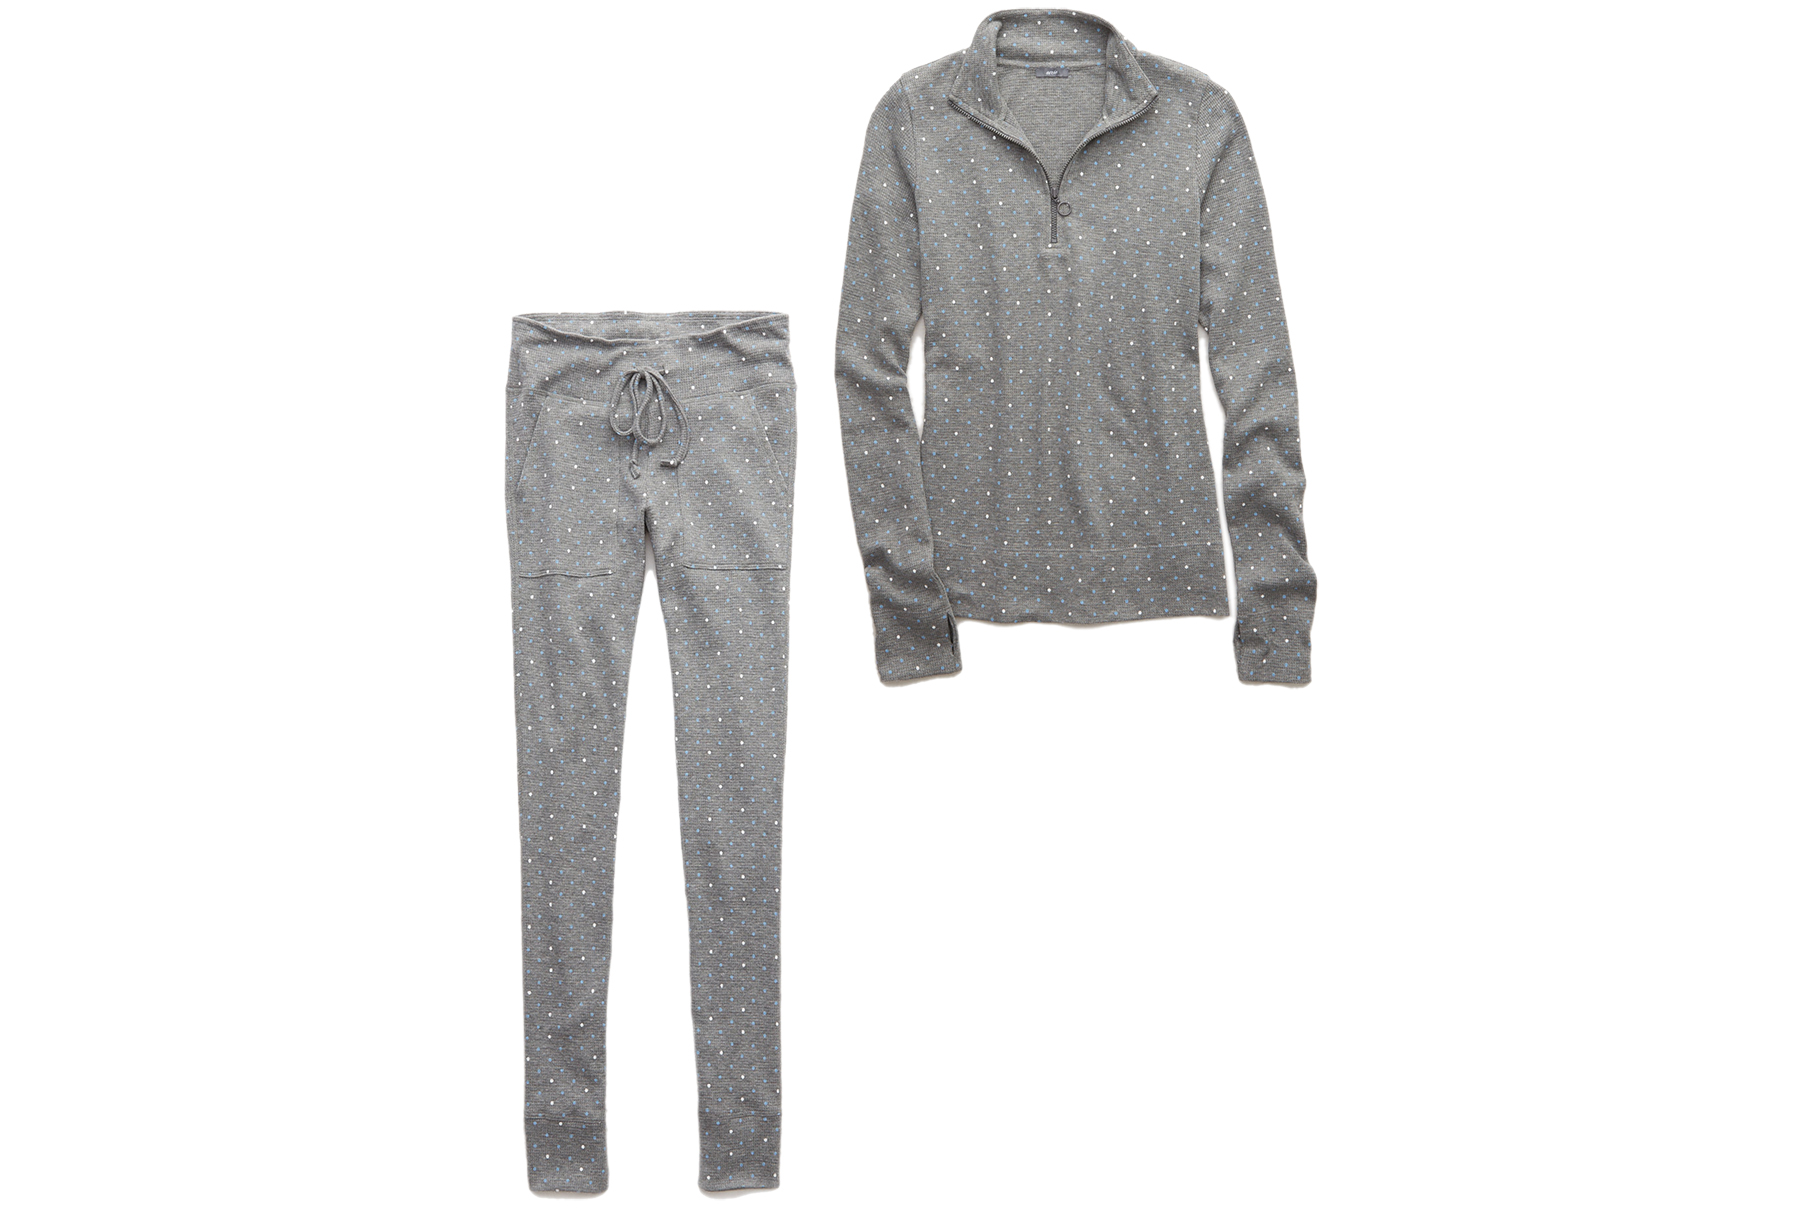 Aerie Waffle Quarter Zip Tee and Leggings